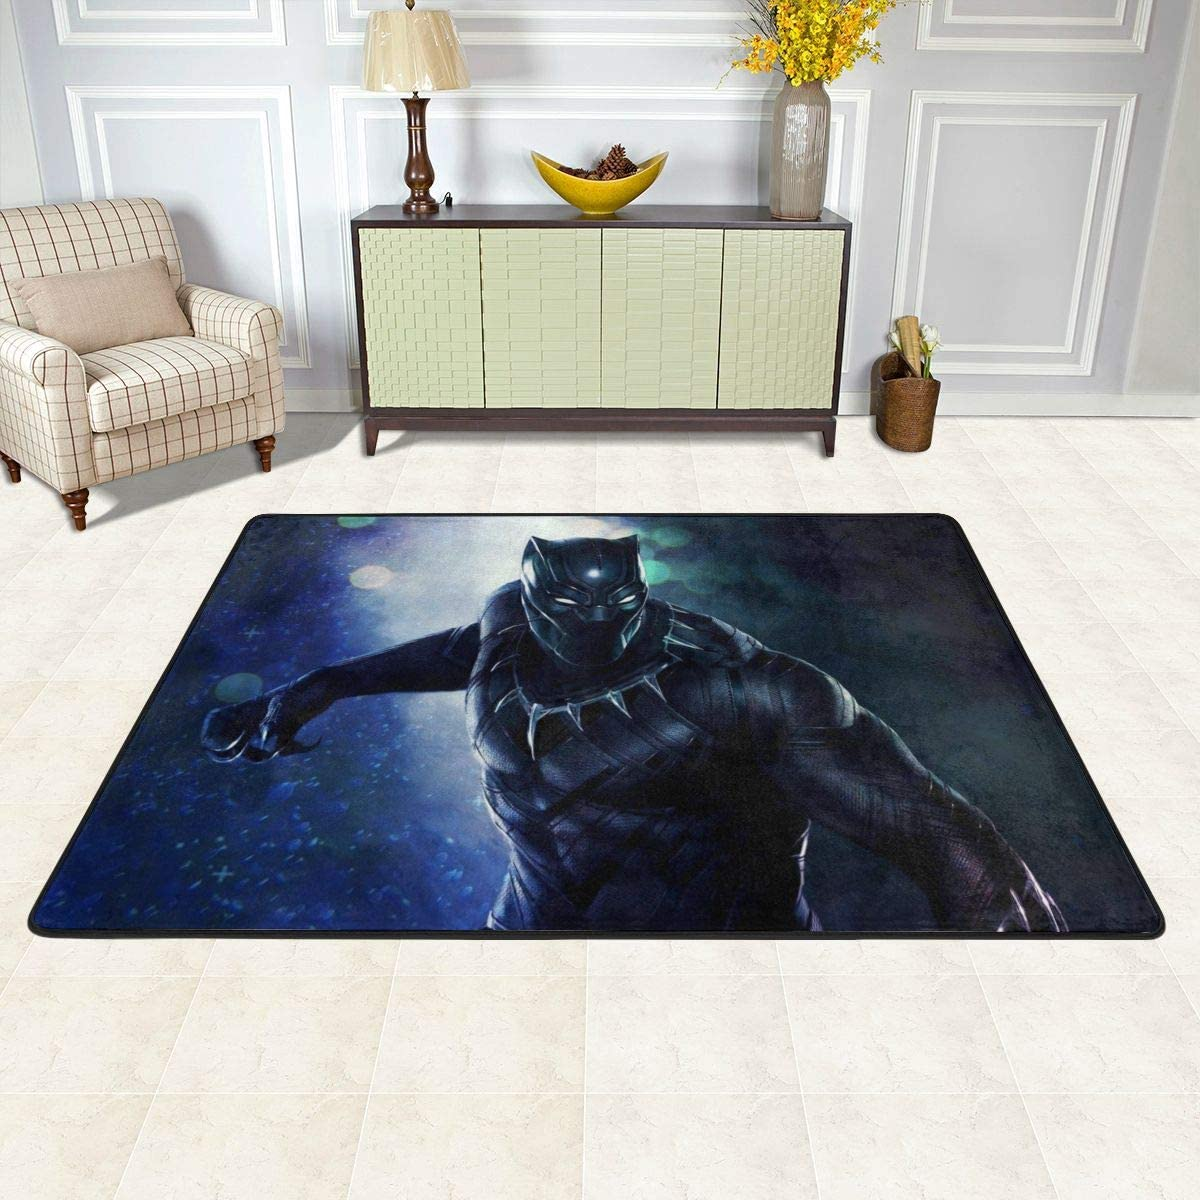 Bl-ack Pan-Ther Carpet Area Bedroom Camping Soft Mat Kids Boys Girl Blankets Kindergarten Home Room Comfortable and Durable Decor Rug Polyester-72 x 48 inch